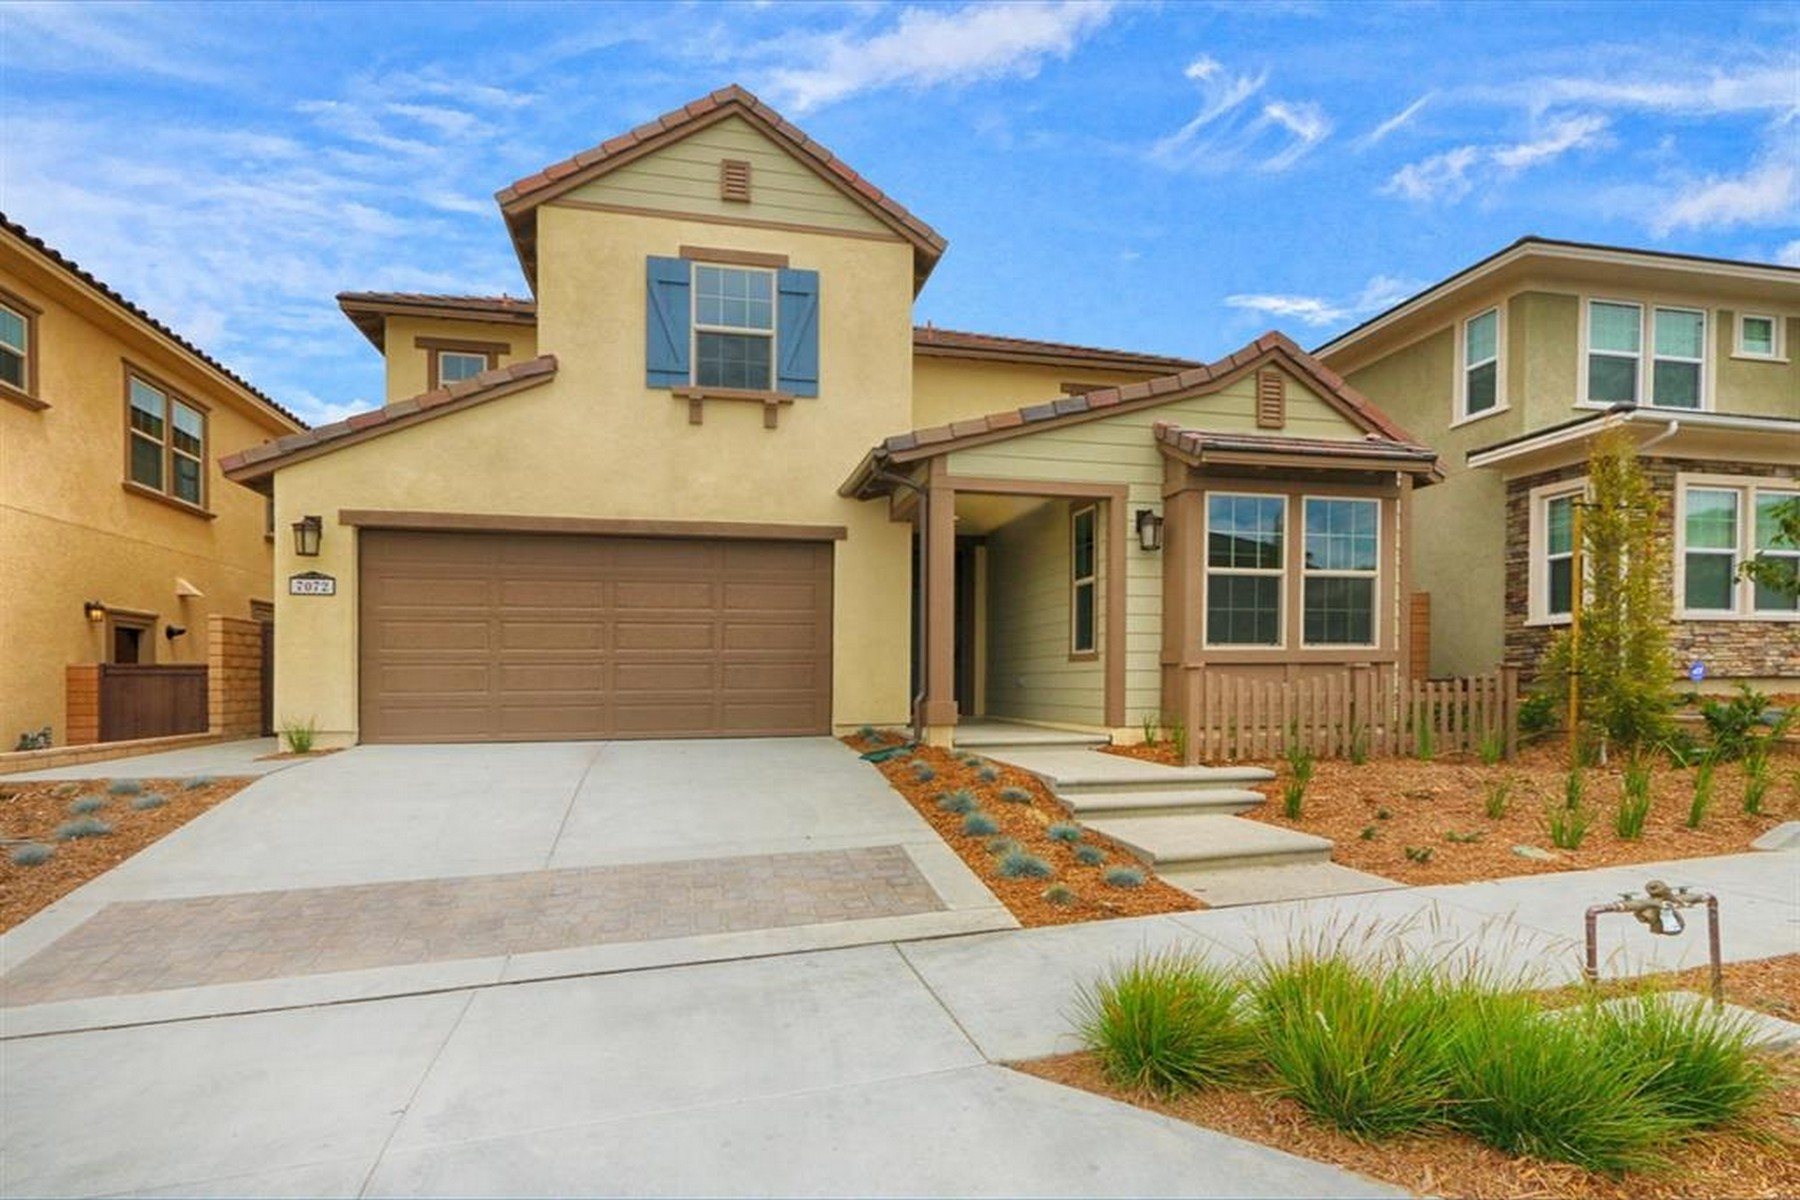 Single Family Home for Sale at Casabella 7072 Via Agave San Diego, California, 92130 United States